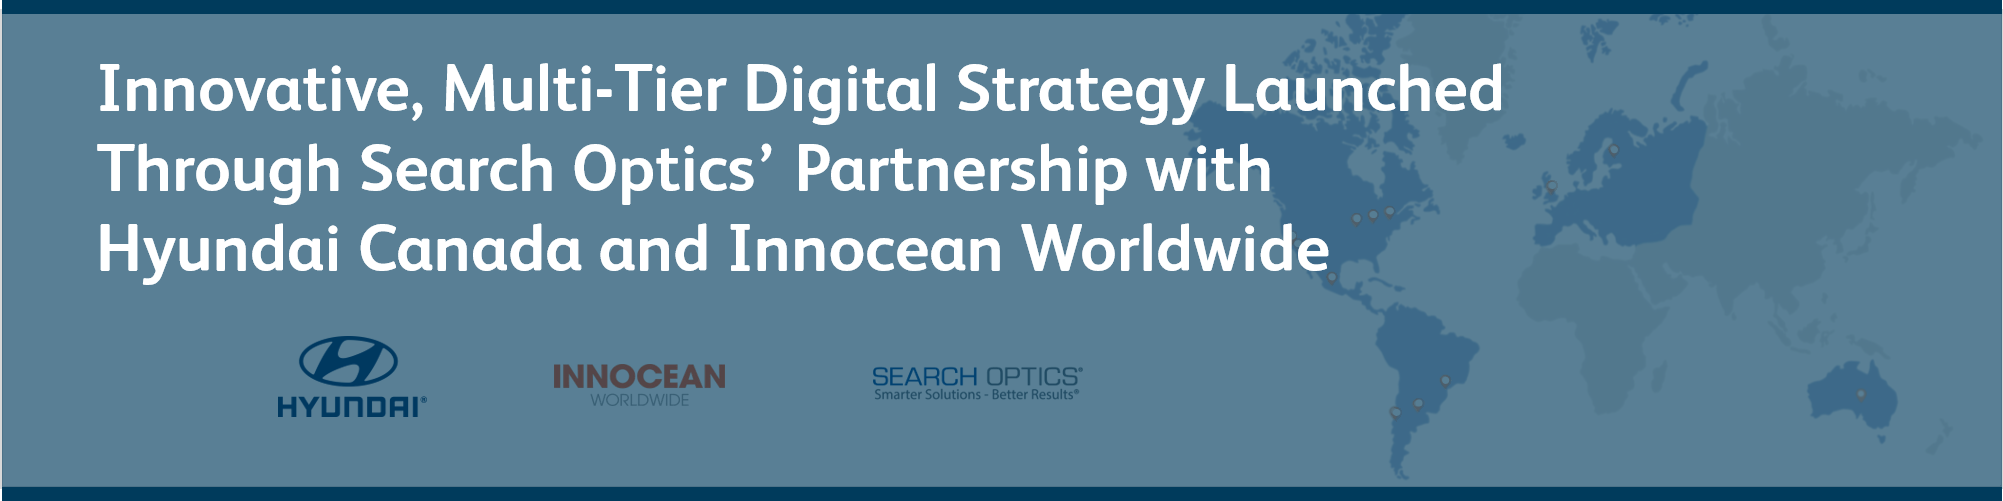 Innovative, Multi-Tier Digital Strategy Launched Through Search Optics' Partnership with Hyundai Canada and Innocean Worldwide